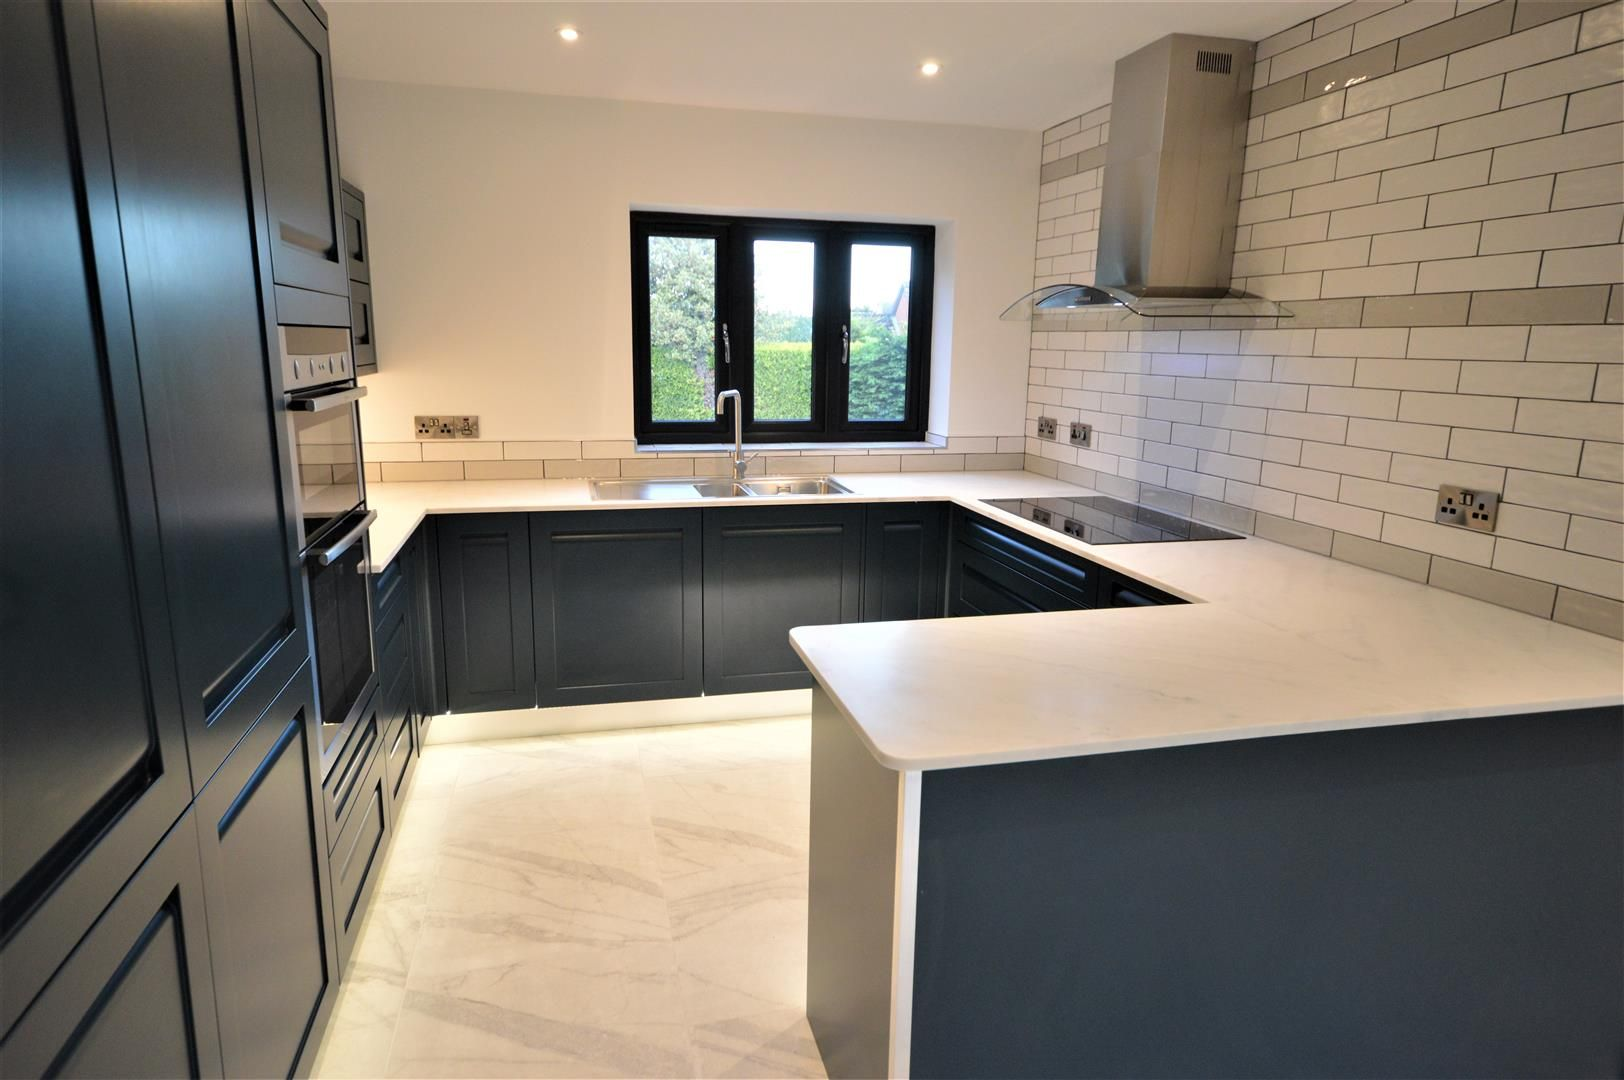 4 bed detached for sale in Brimfield  - Property Image 4